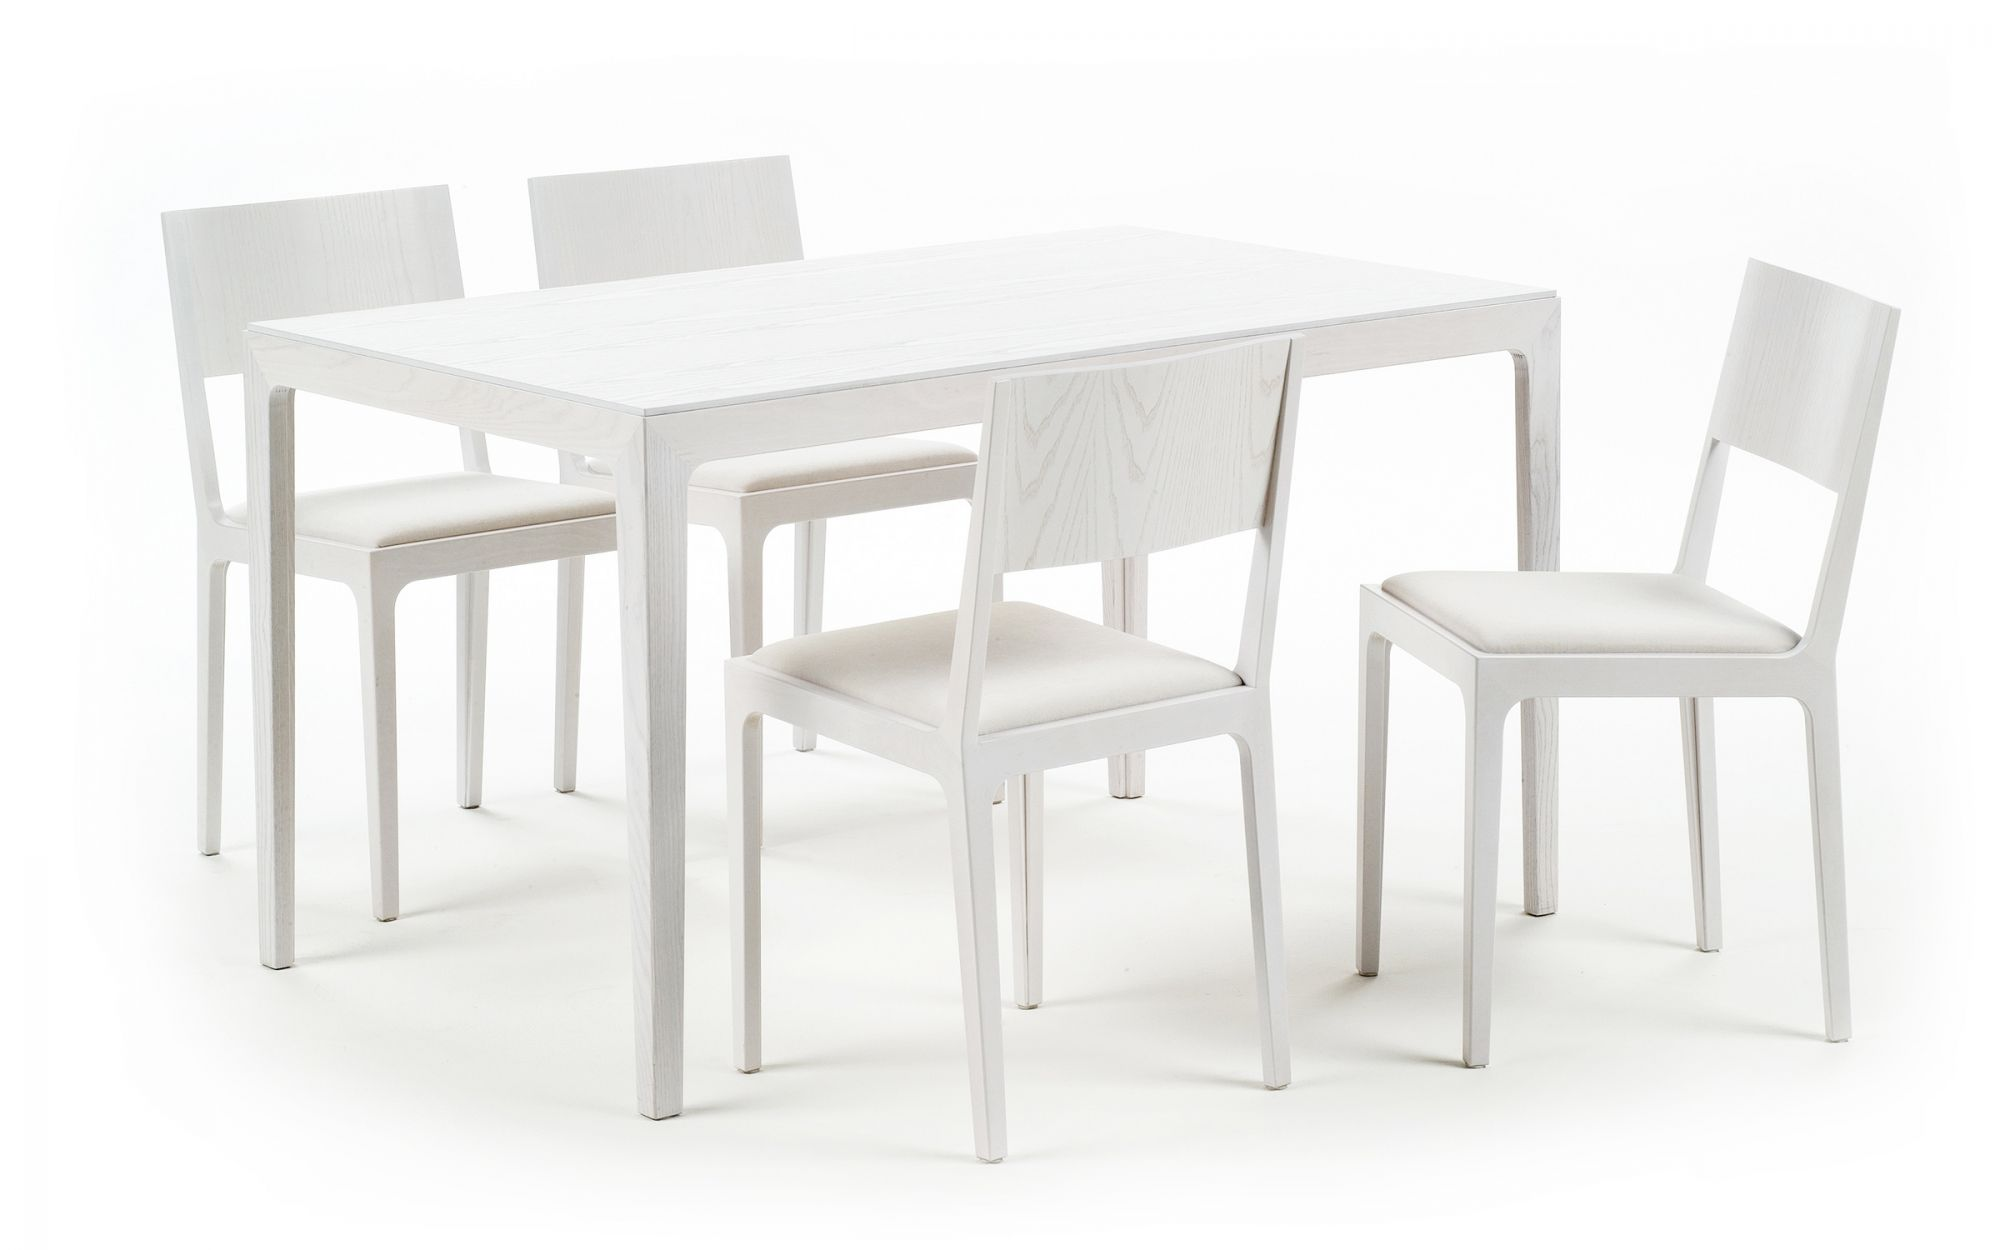 Dininggroup-In-table-chair-white